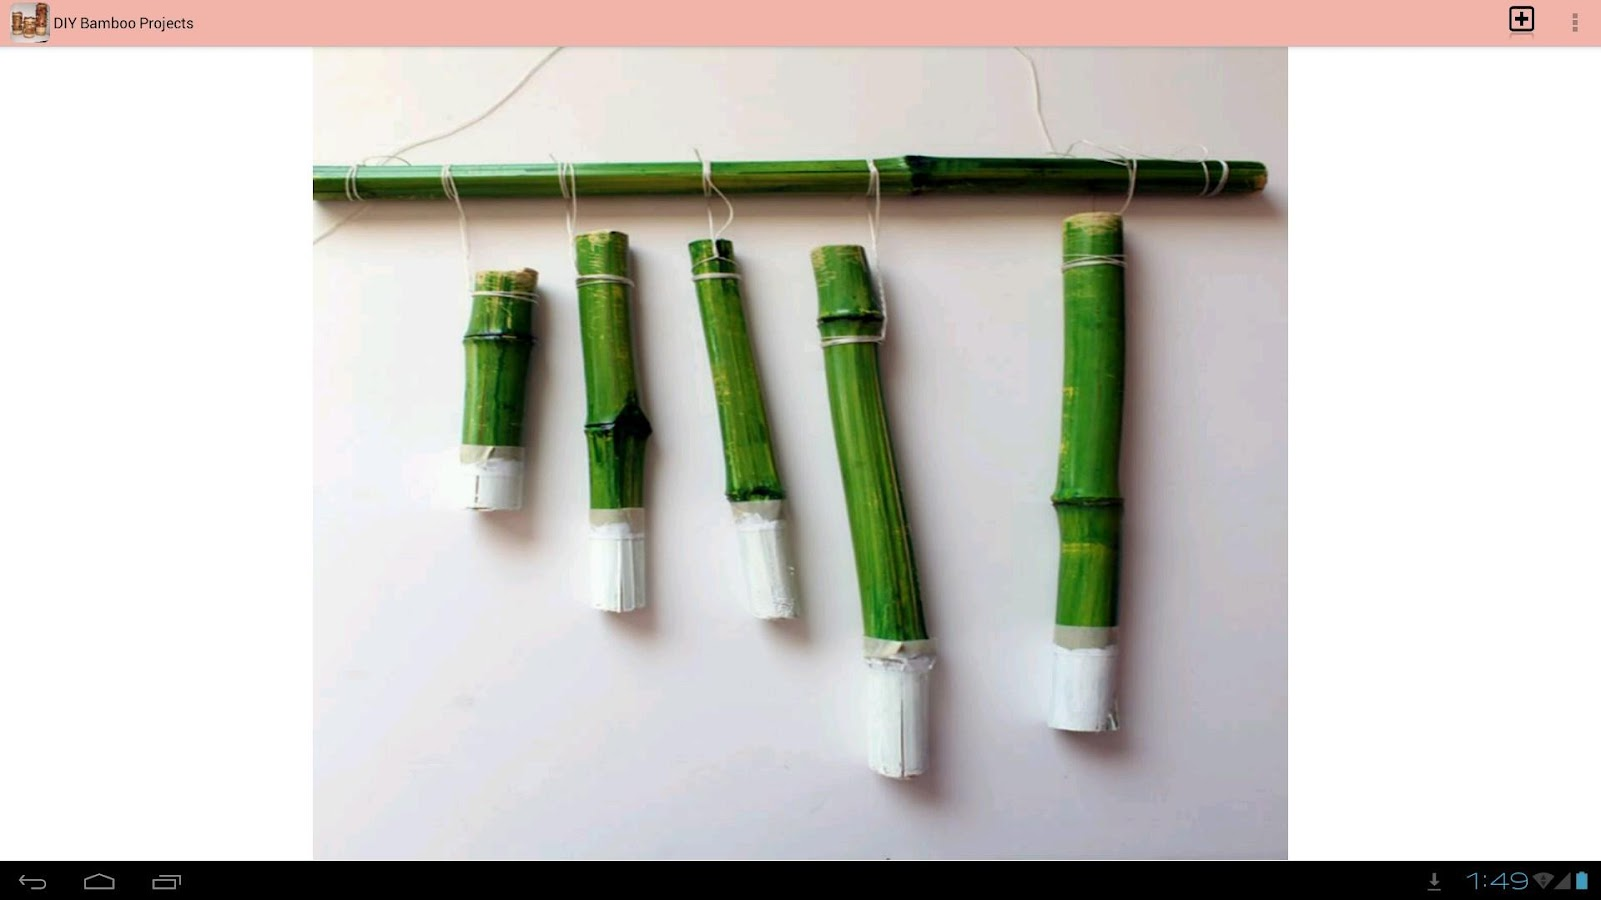 Diy bamboo projects 10 apk download android lifestyle apps diy bamboo projects 10 screenshot 3 solutioingenieria Image collections